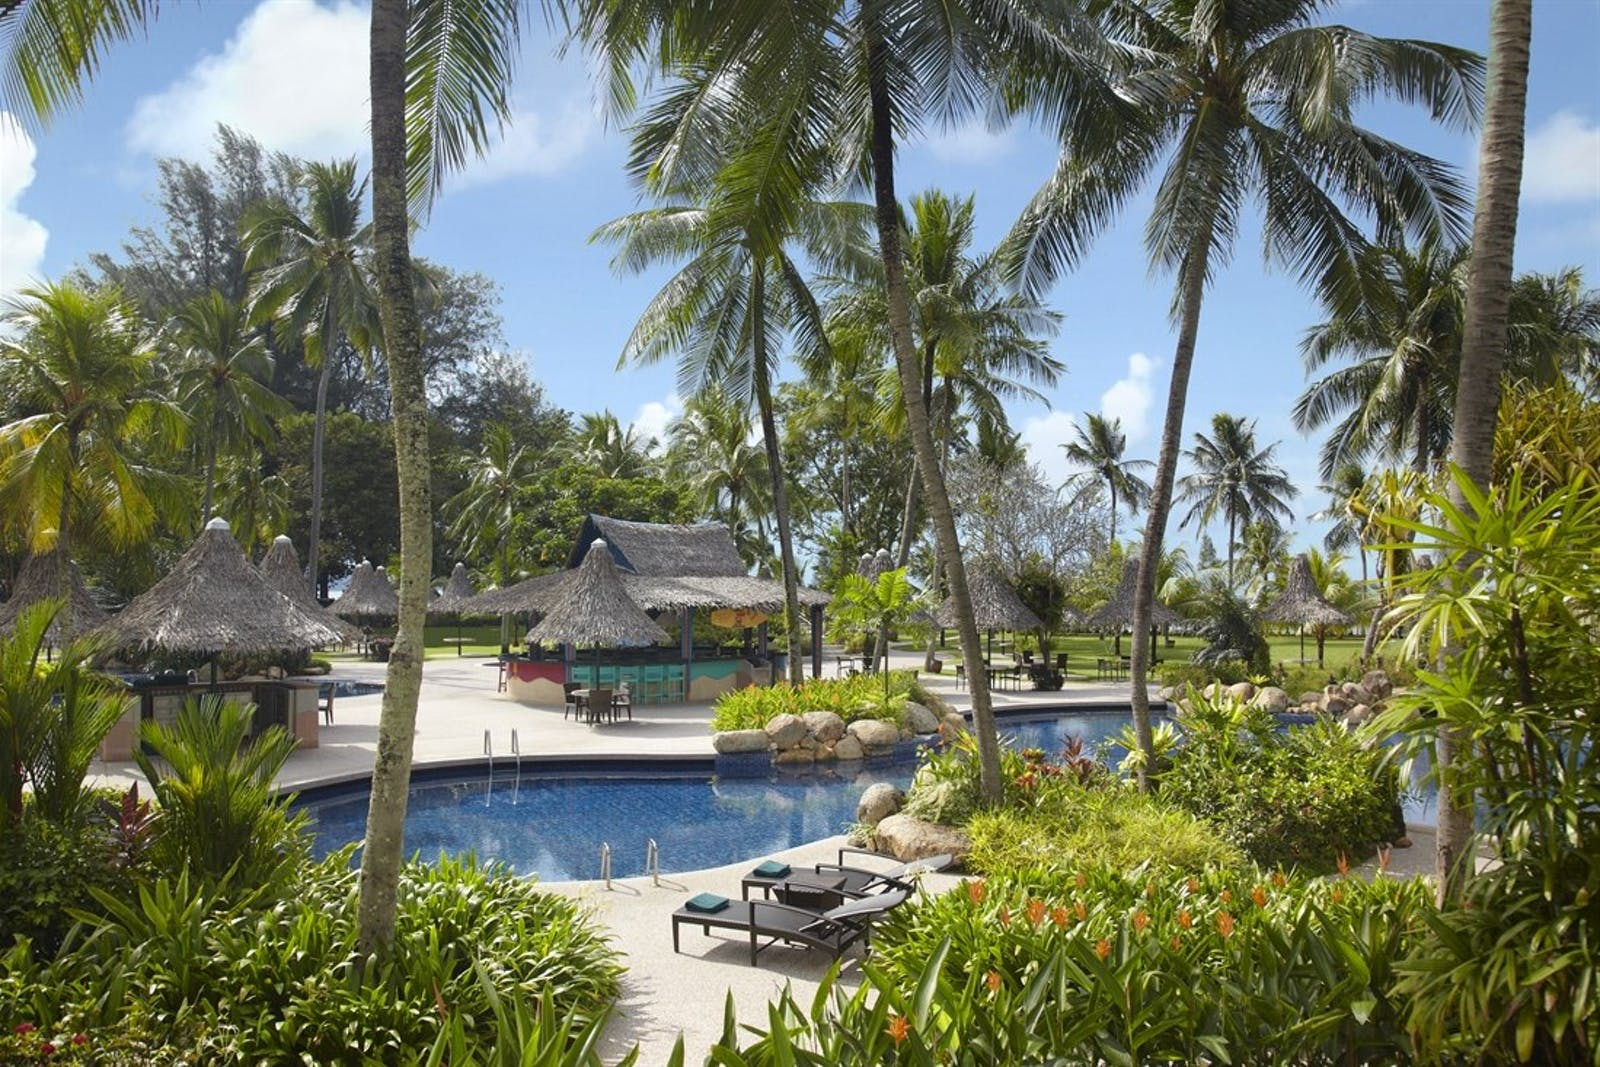 Pool Area at Golden Sands Resort by Shangri-La